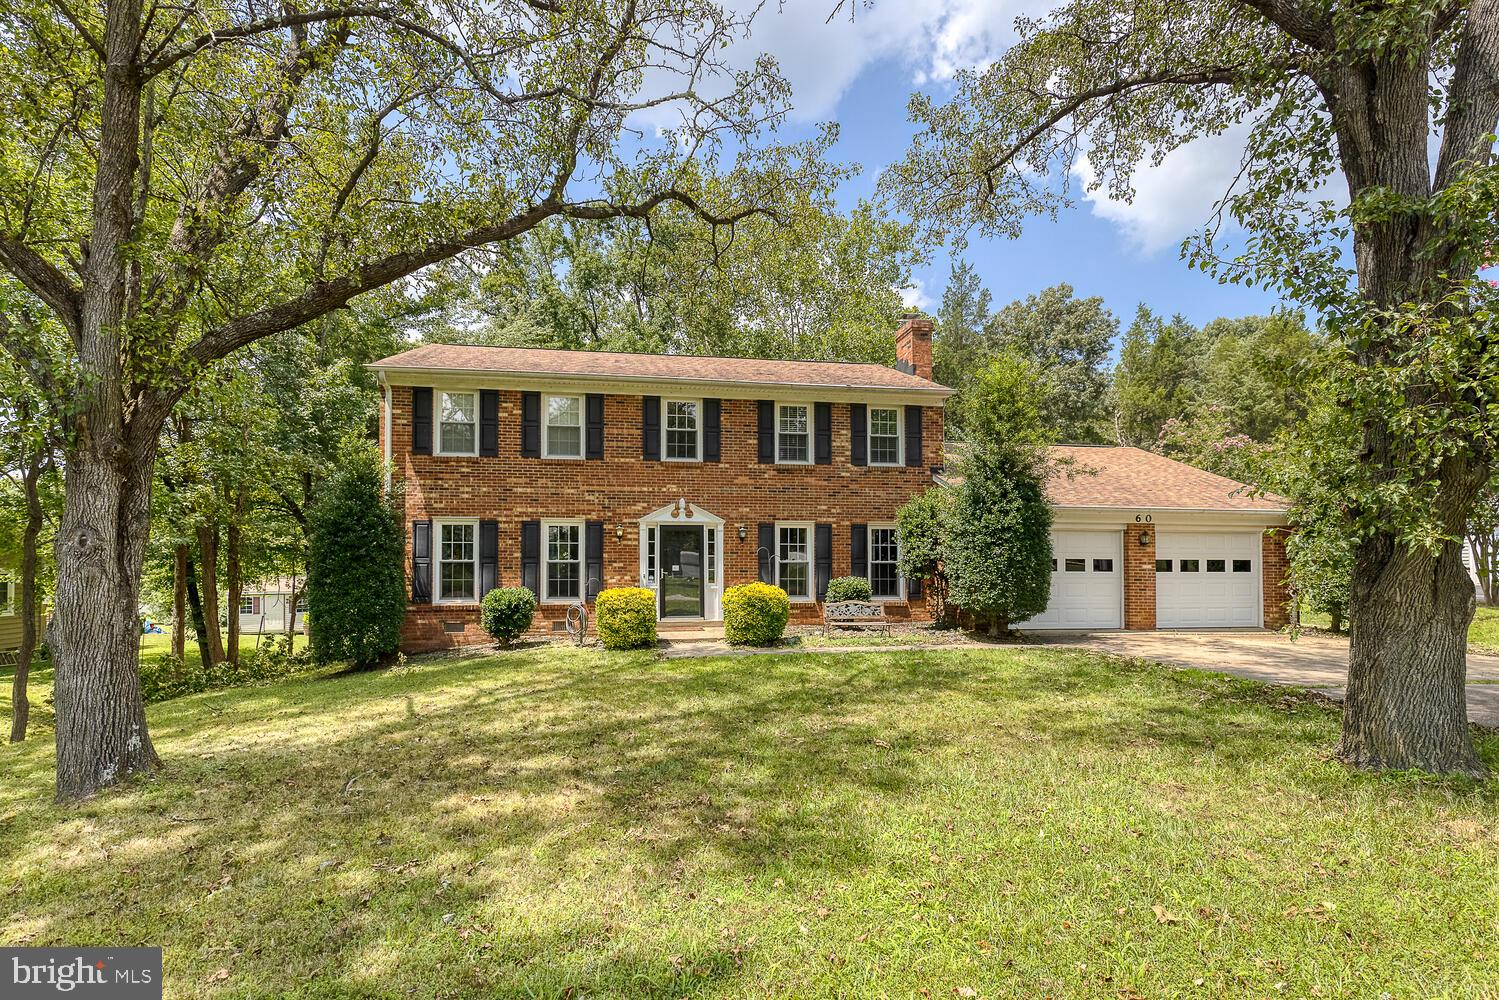 Cozy four bedroom, two and a half bathroom brick Colonial home with large private fenced backyard, f